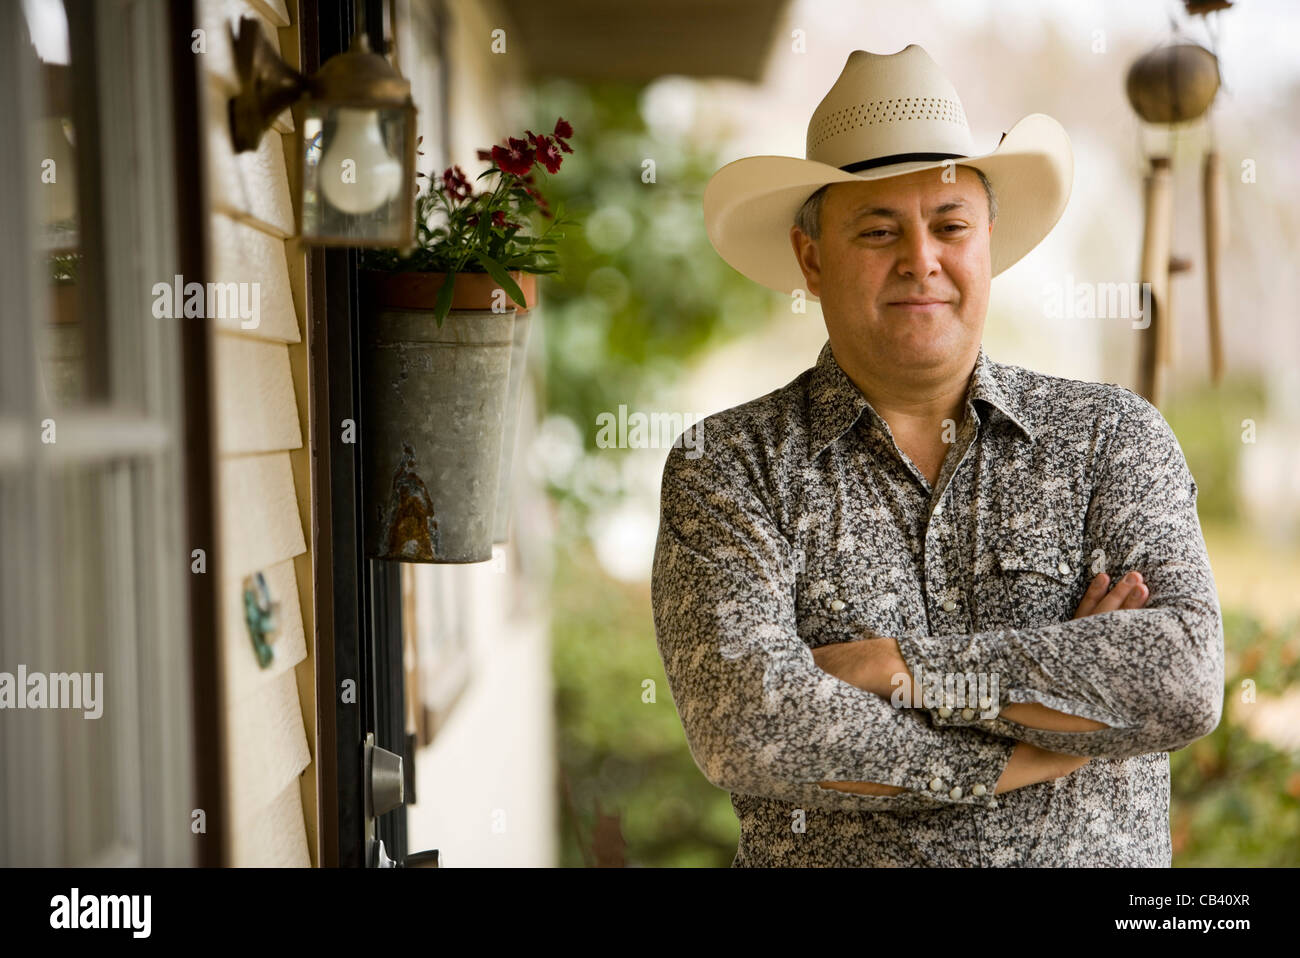 Vue d une maturité contemplative man wearing cowboy hat in front of house  Photo Stock a50e69d8a2cb